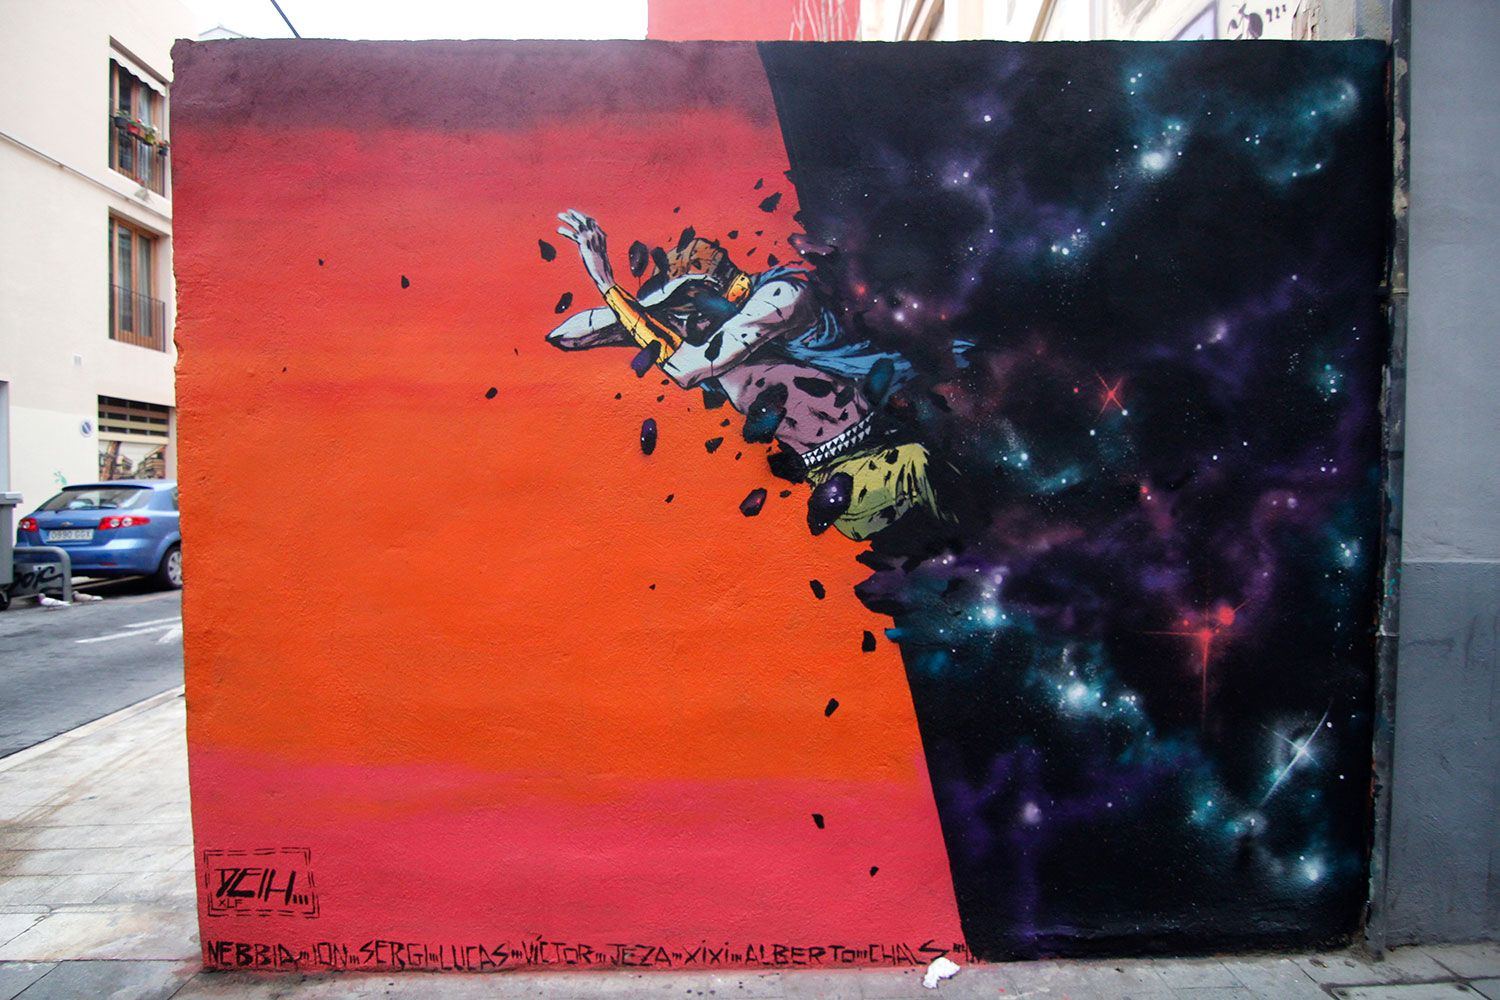 """Our friend Deih is back on the streets of his hometown, Valencia in Spain where he just finished working on this brand new piece. The popular Spanish artist quickly worked his way through this signature piece showing one of his comic-like characters emerging from a galaxy. """"Be careful, there is gravity out there"""" –Deih More"""